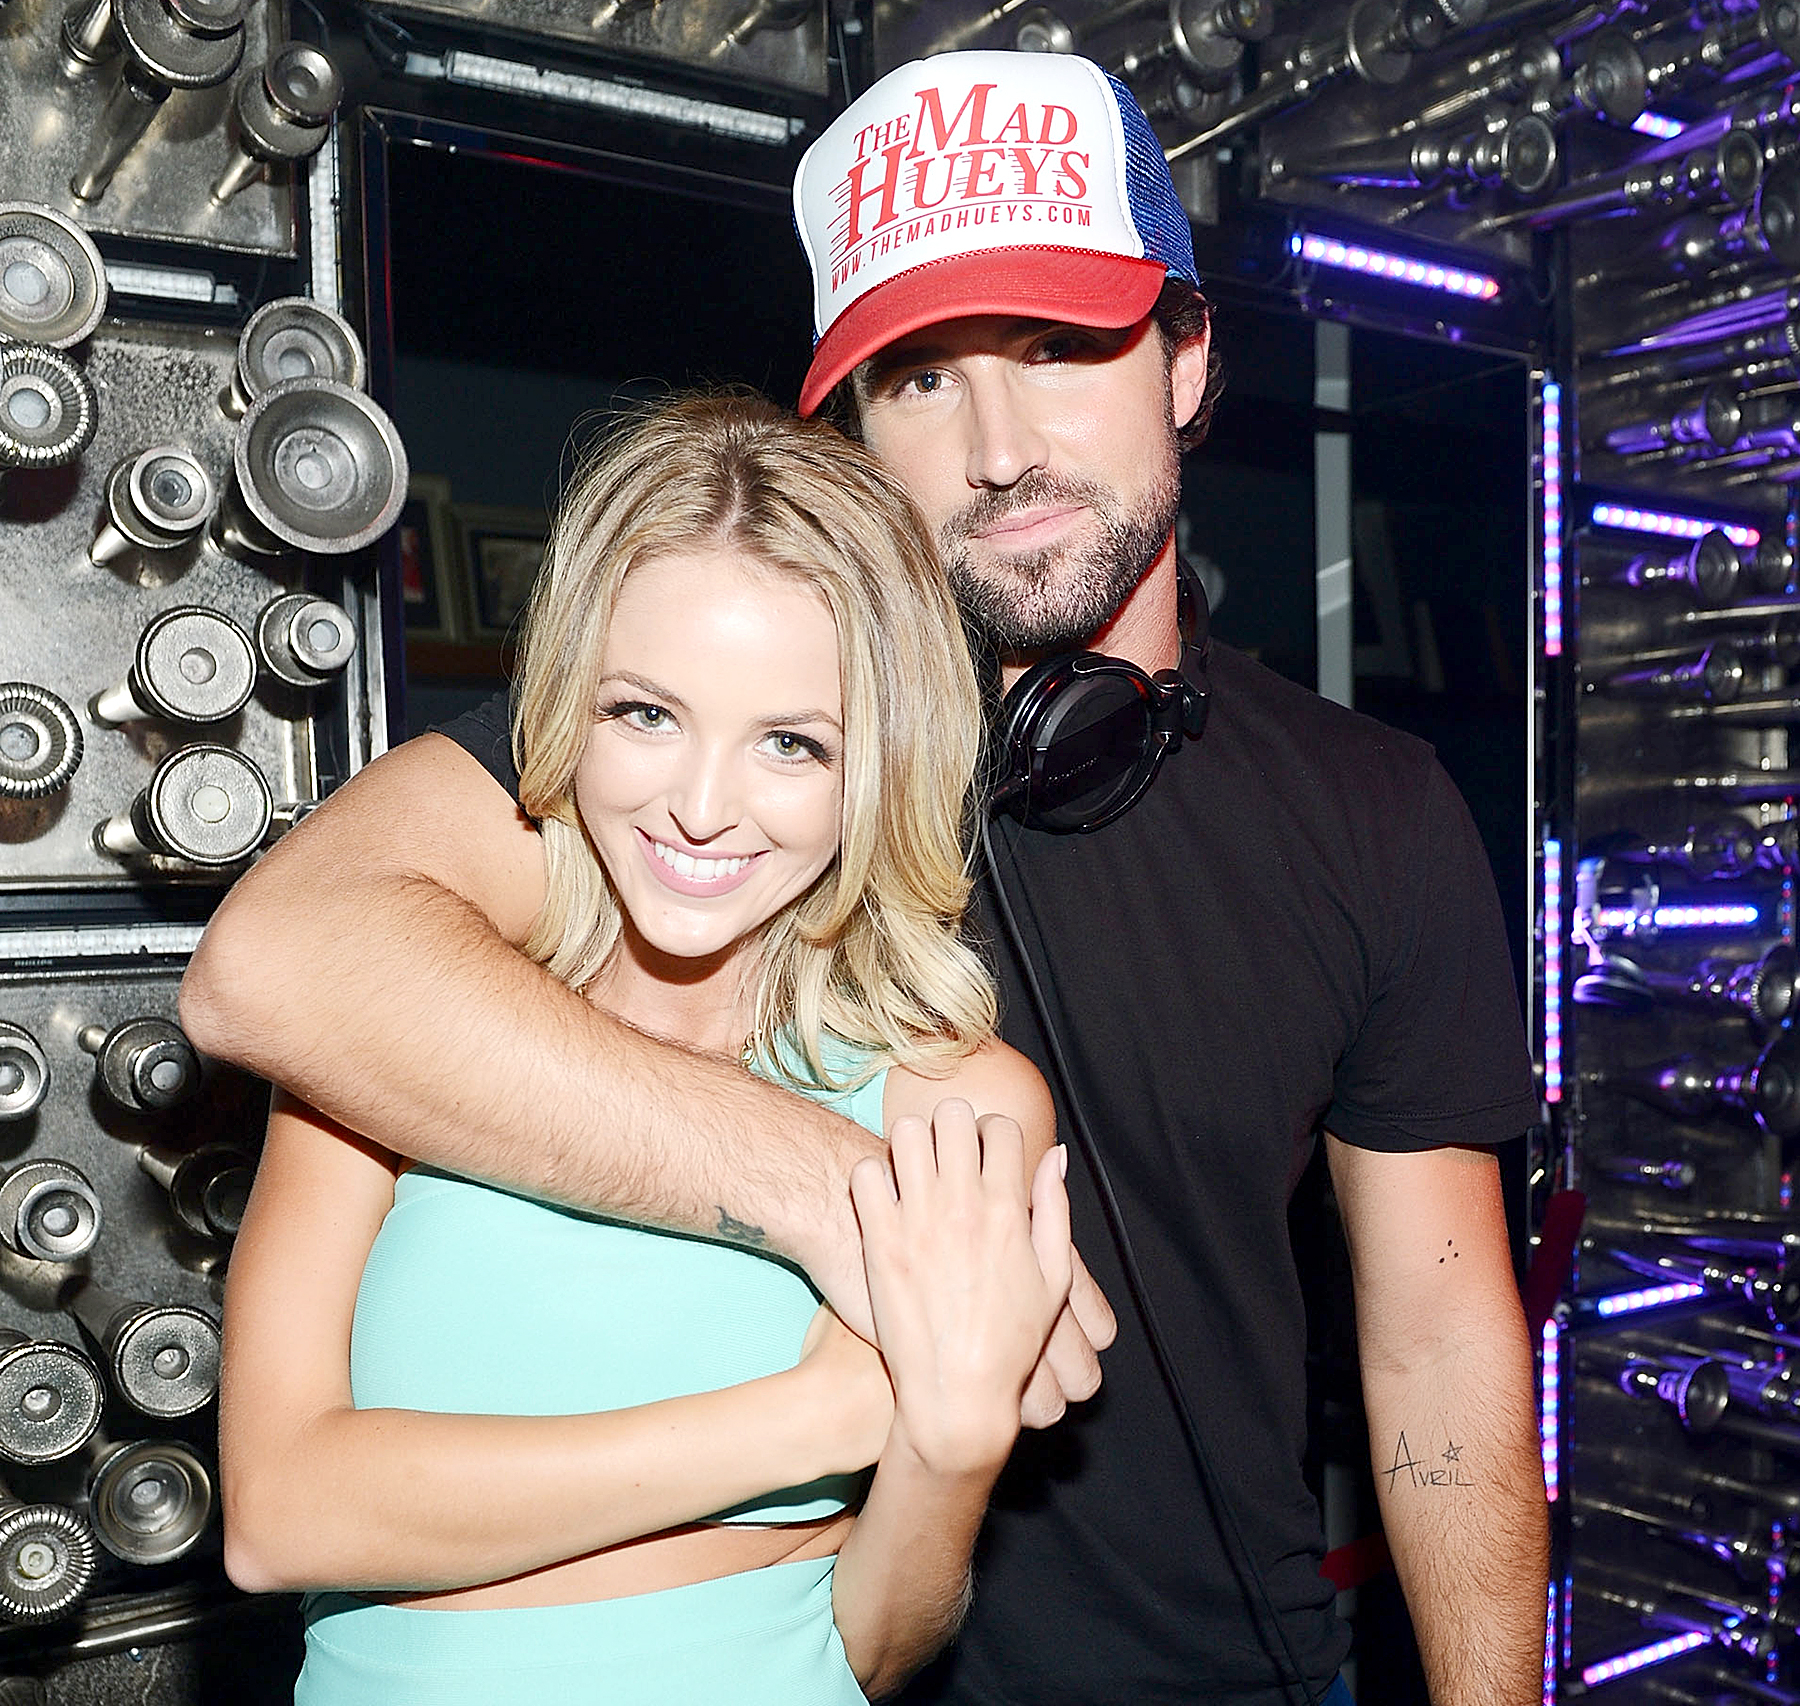 Brody Jenner and Kaitlynn Carter during Brody Jenner's Las Vegas DJ debut at Hyde Bellagio on July 18, 2014, in Las Vegas.